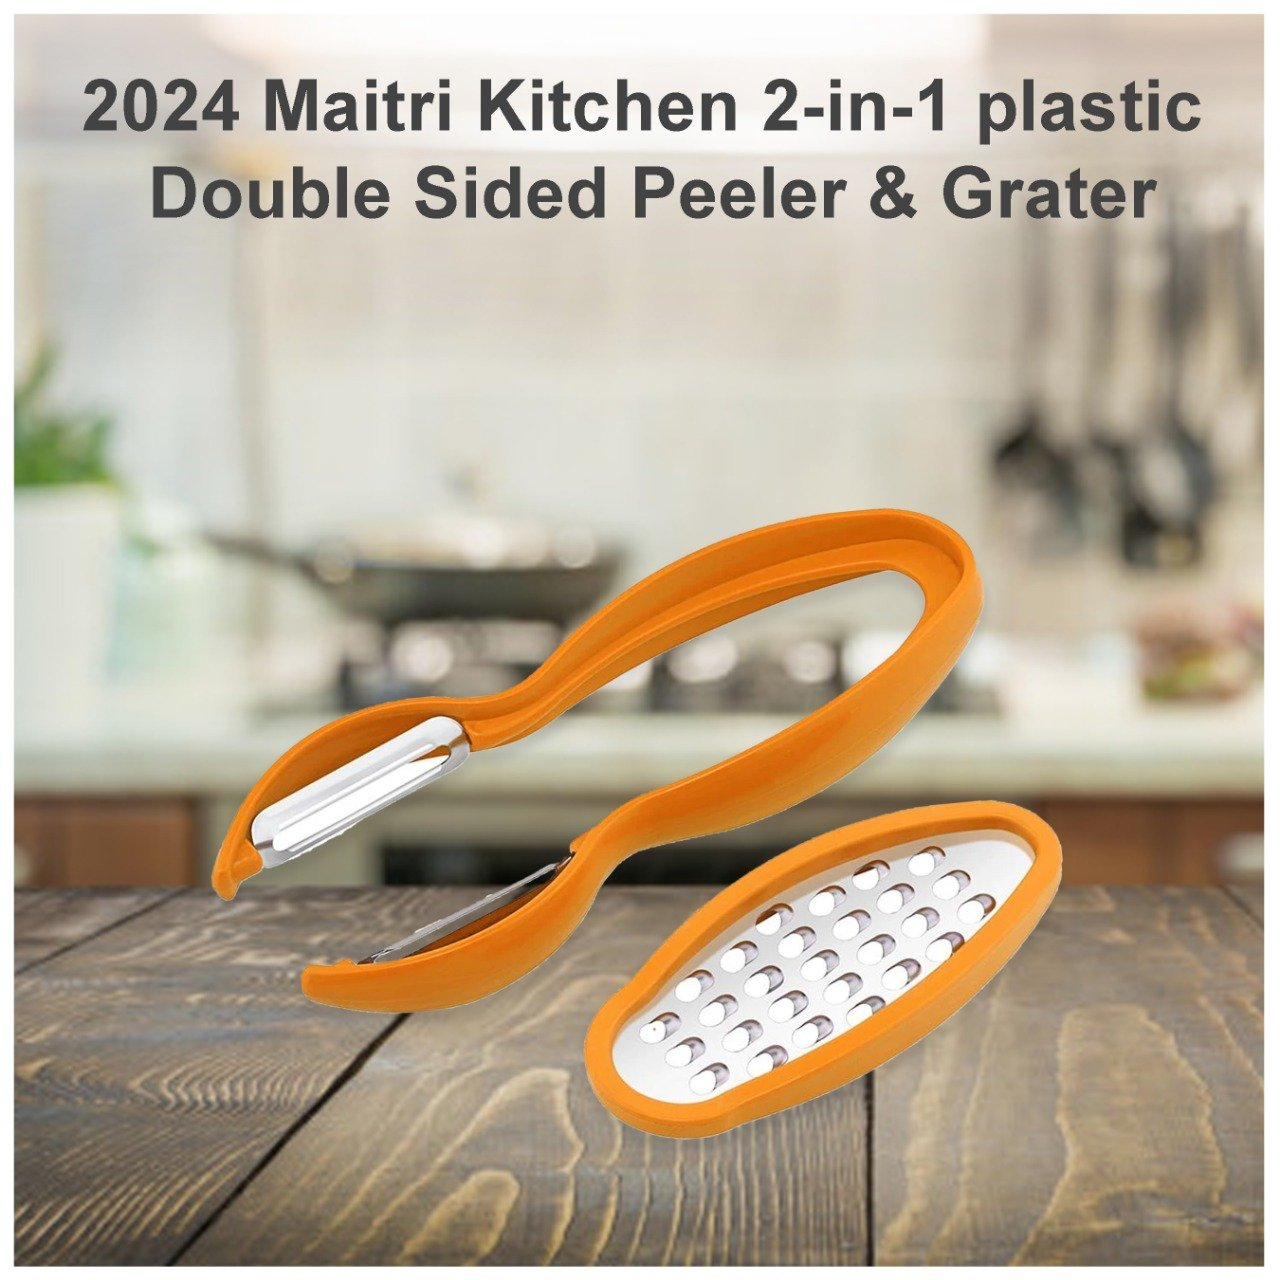 2024 Maitri Kitchen 2-in-1 plastic Double Sided Peeler & Grater